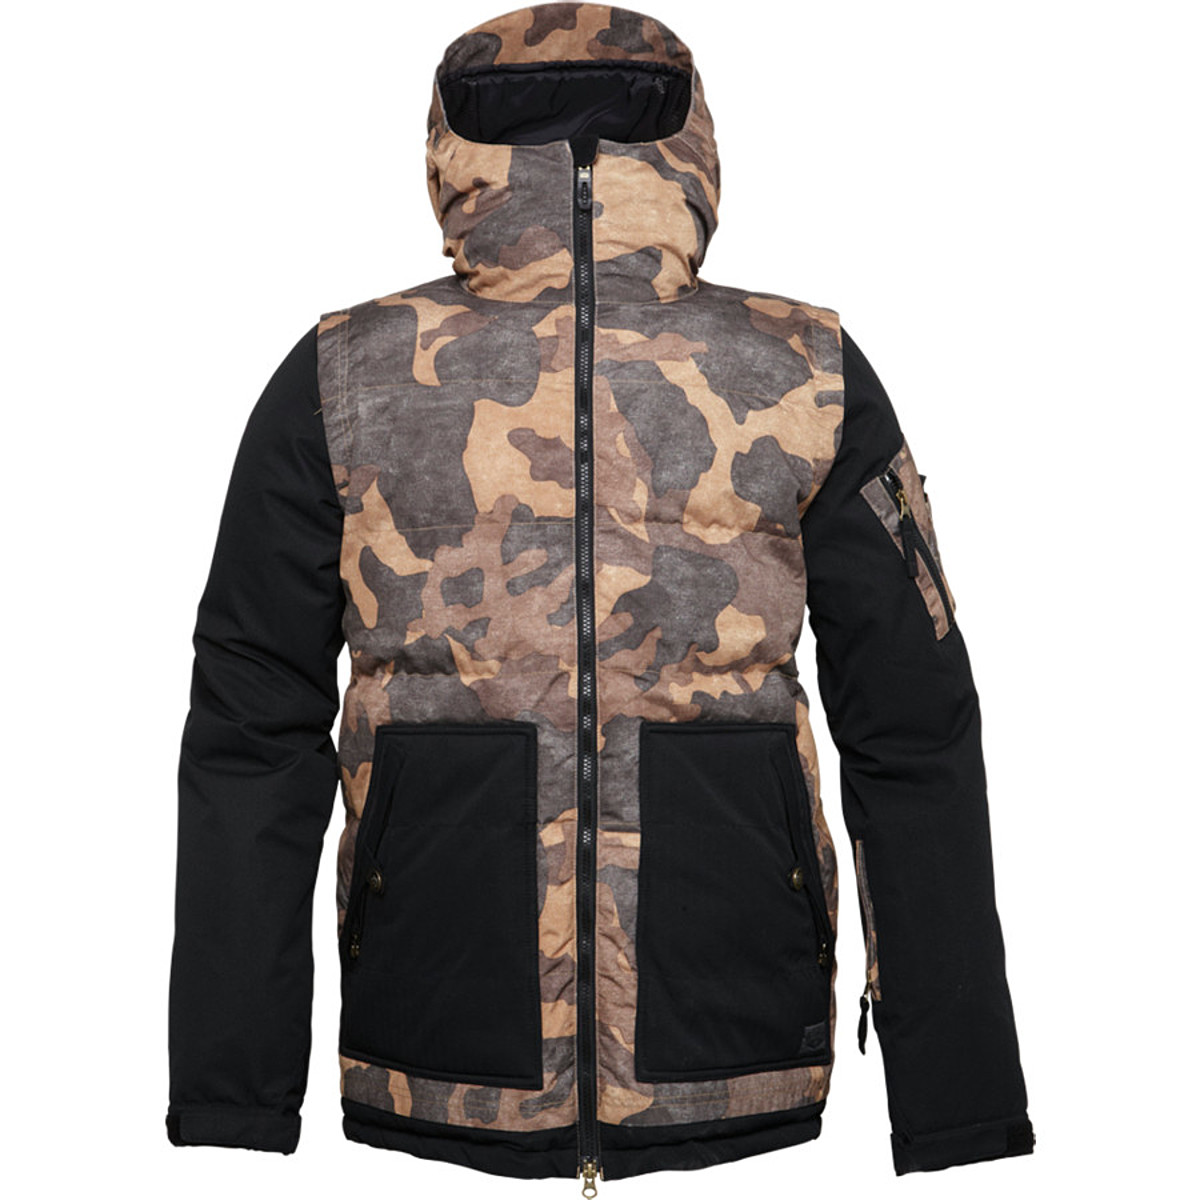 686 Authentic Surface Infiloft Jacket